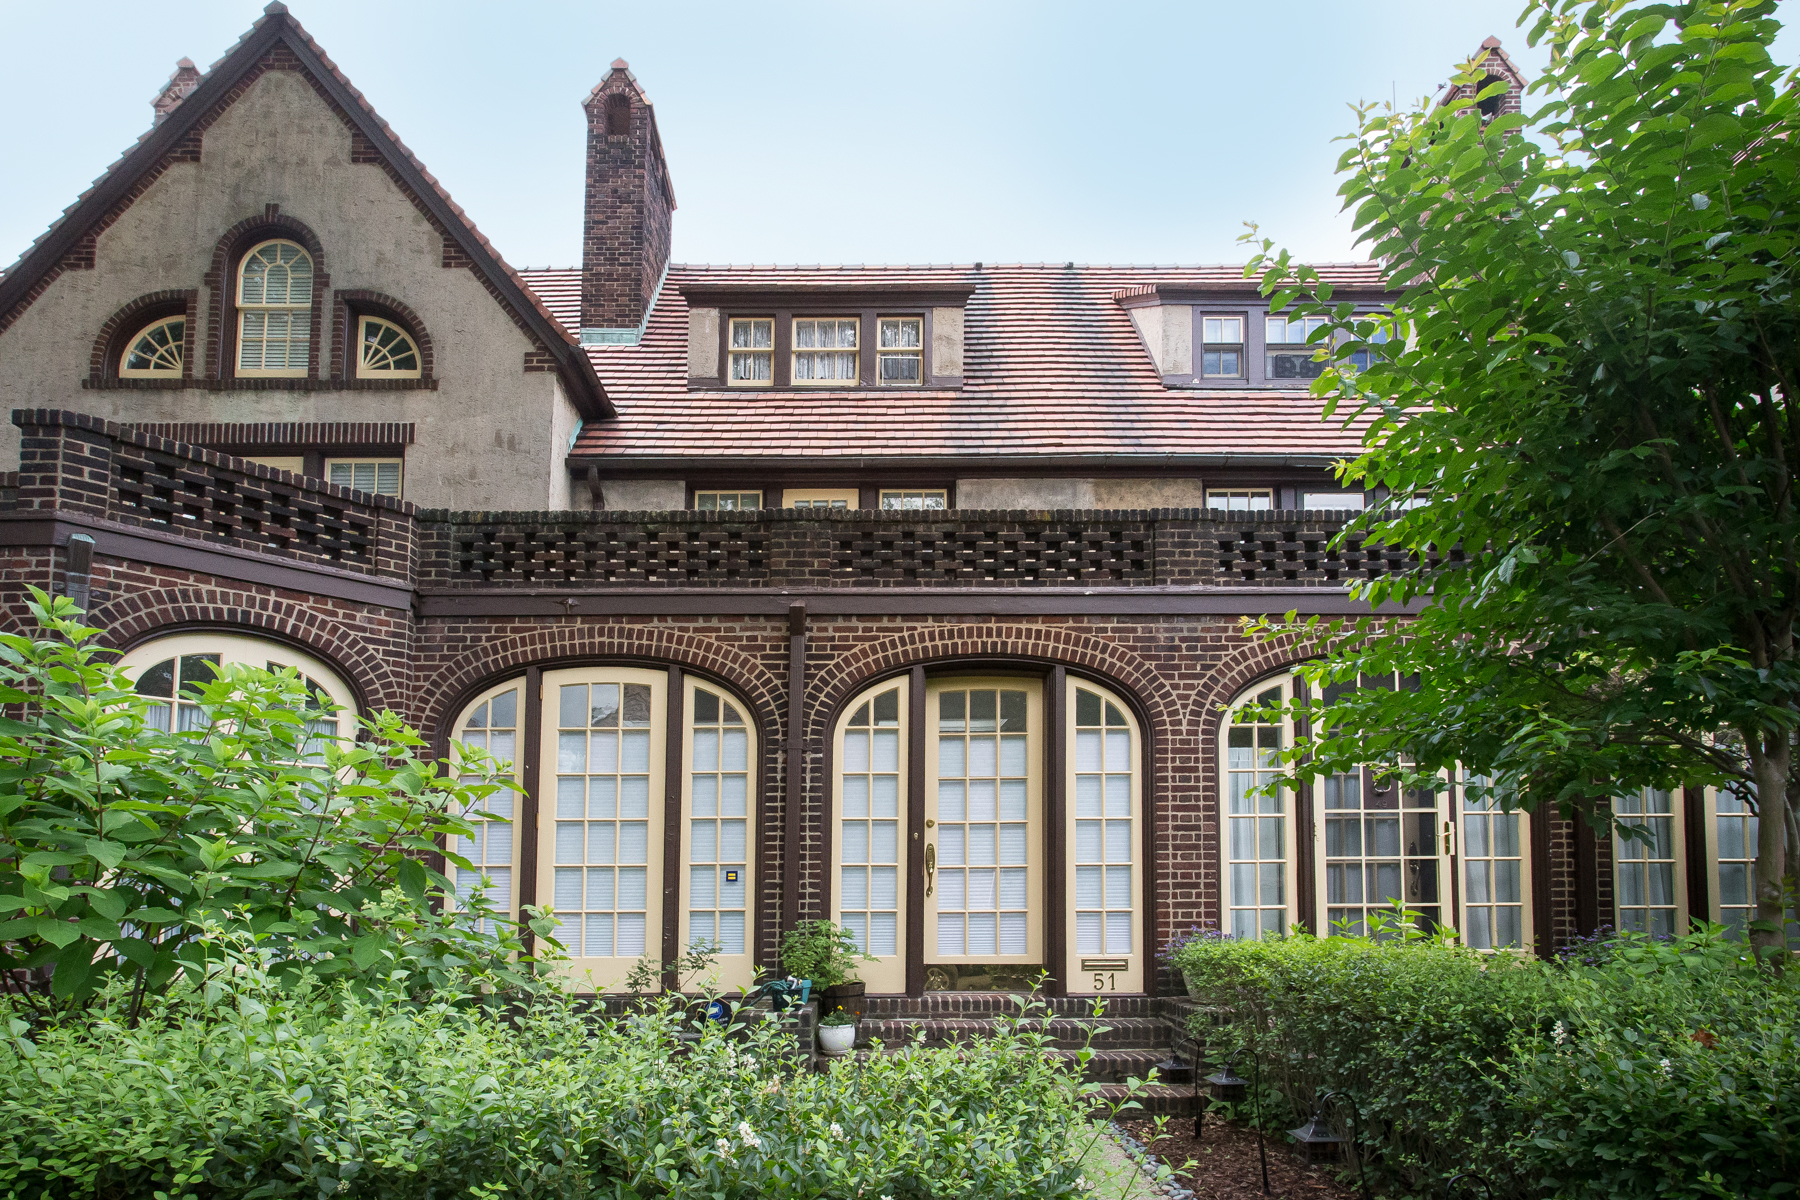 """Townhouse for Sale at """"RESTORED TOWNHOUSE IN BEAUTIFUL FHG"""" 51 Summer Street, Forest Hills Gardens, Forest Hills, New York 11375 United States"""